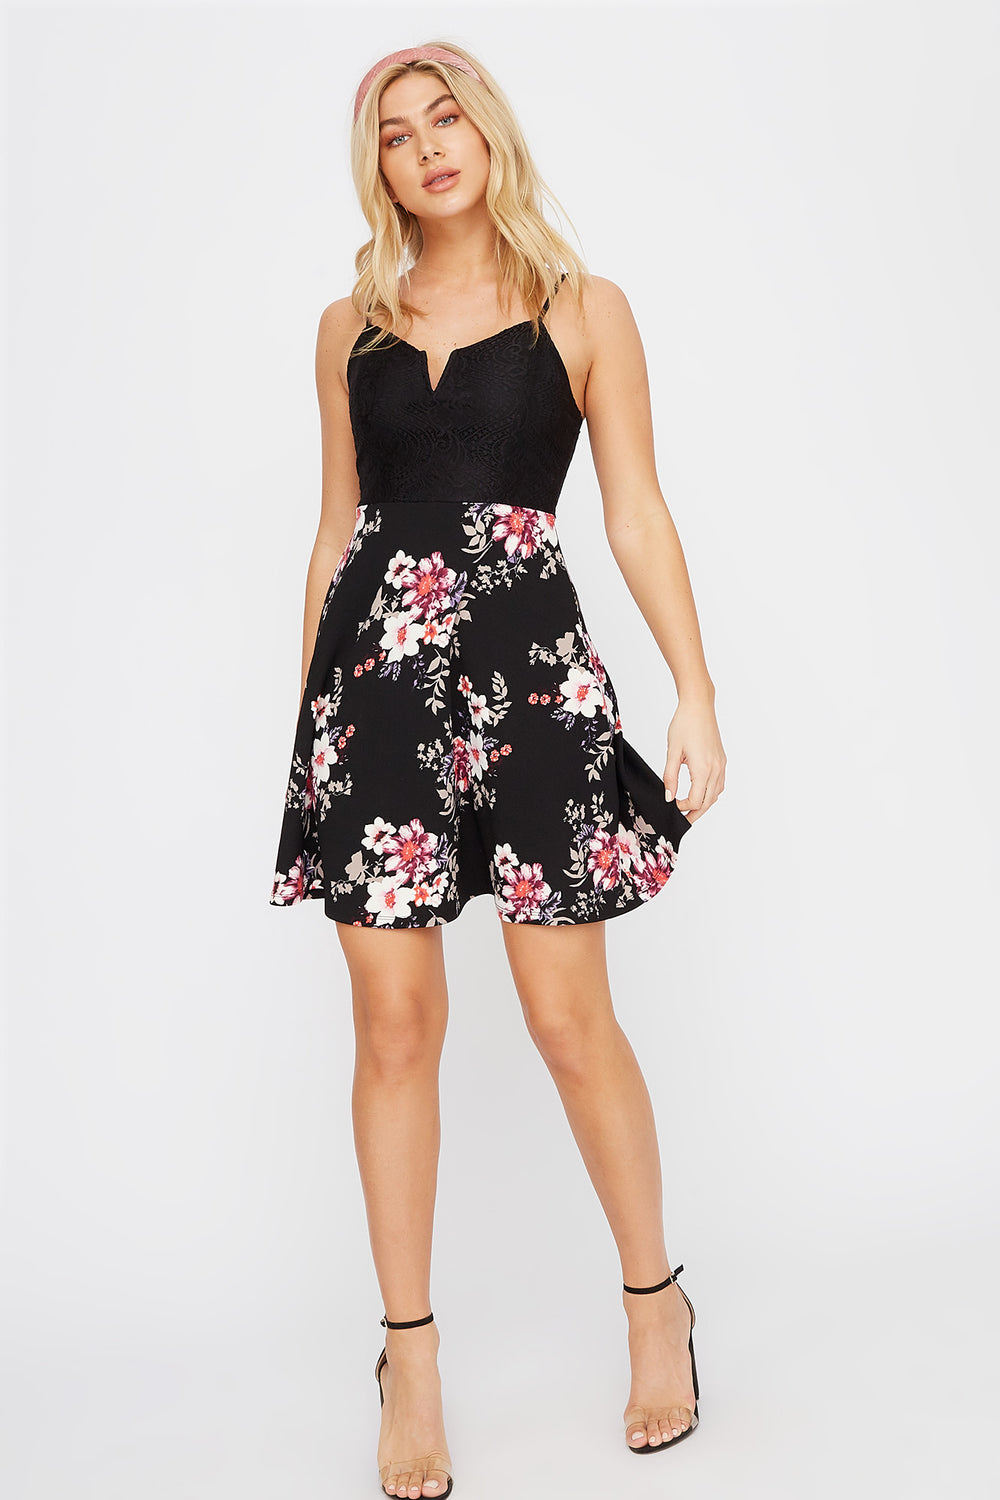 Contrast Lace Floral Skater Dress Black